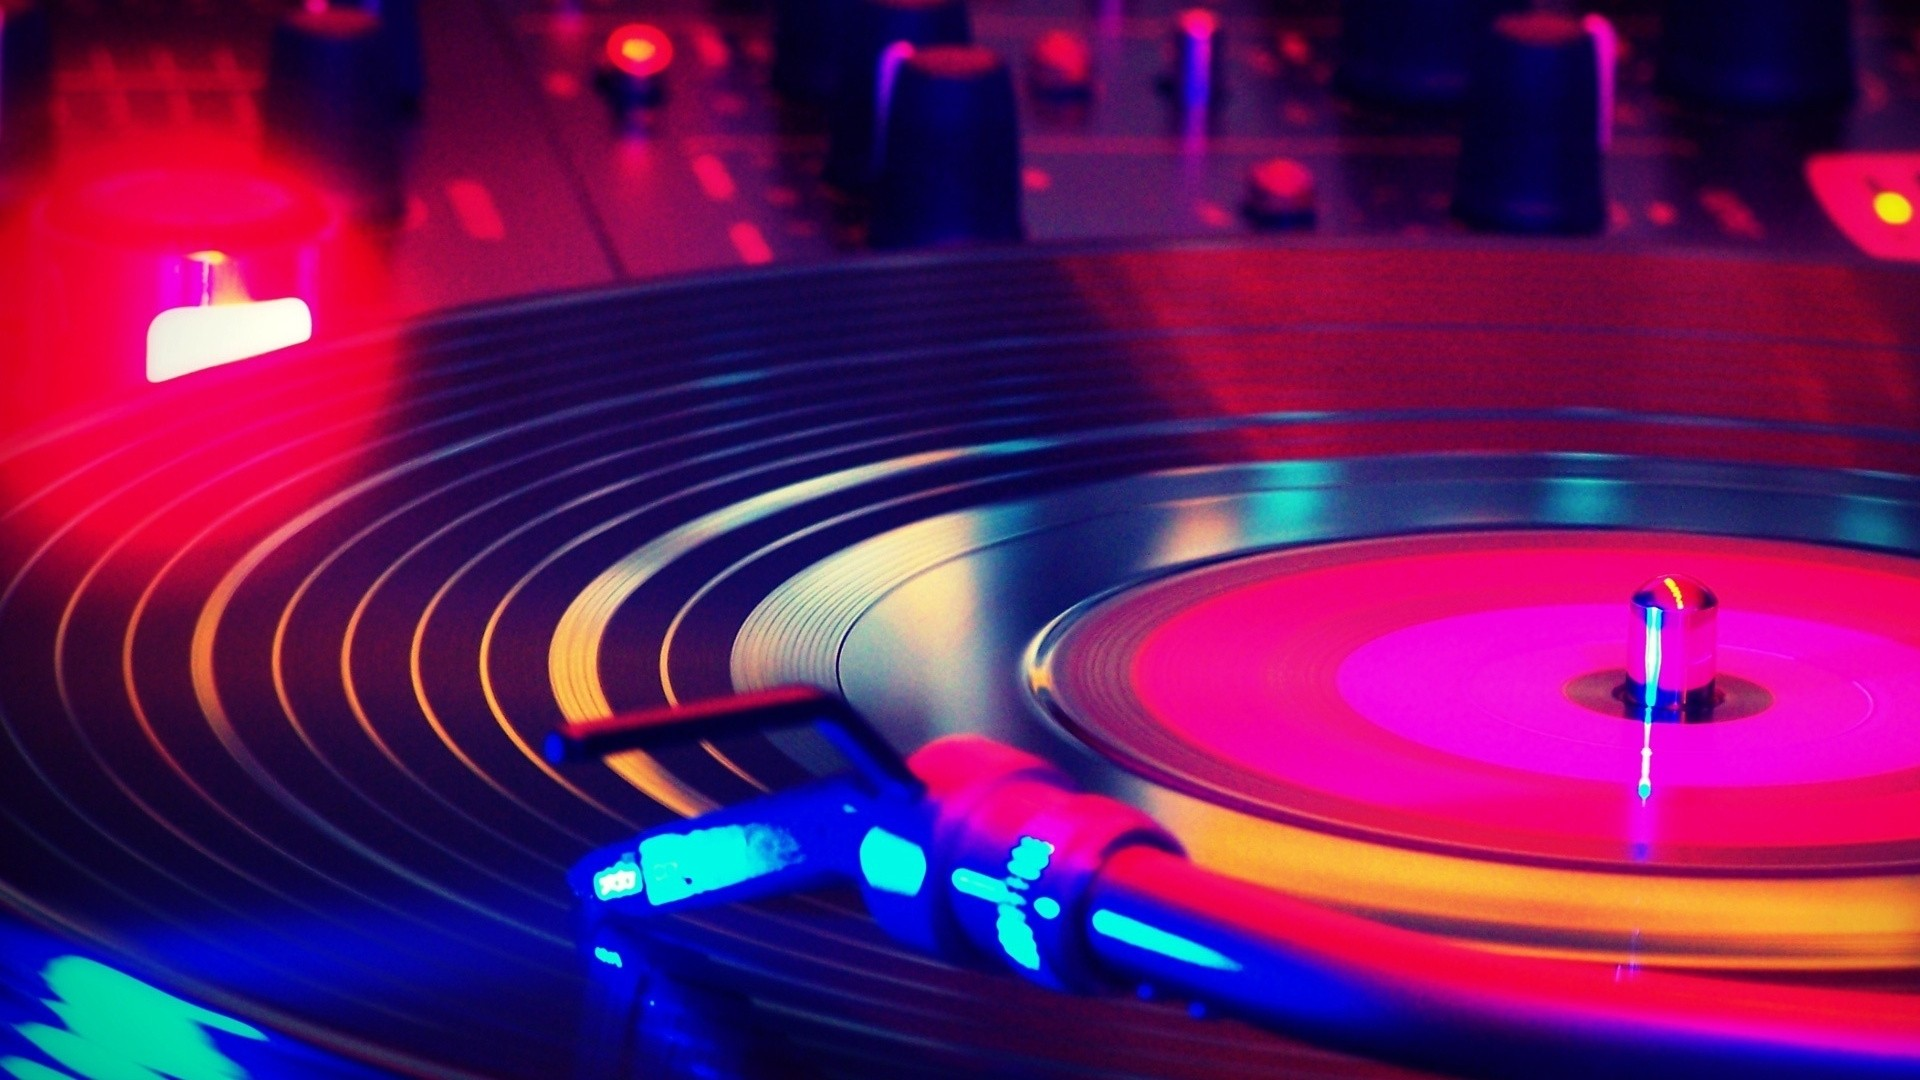 Electronic Dance Music Background Wallpaper I HD Images 1920x1080